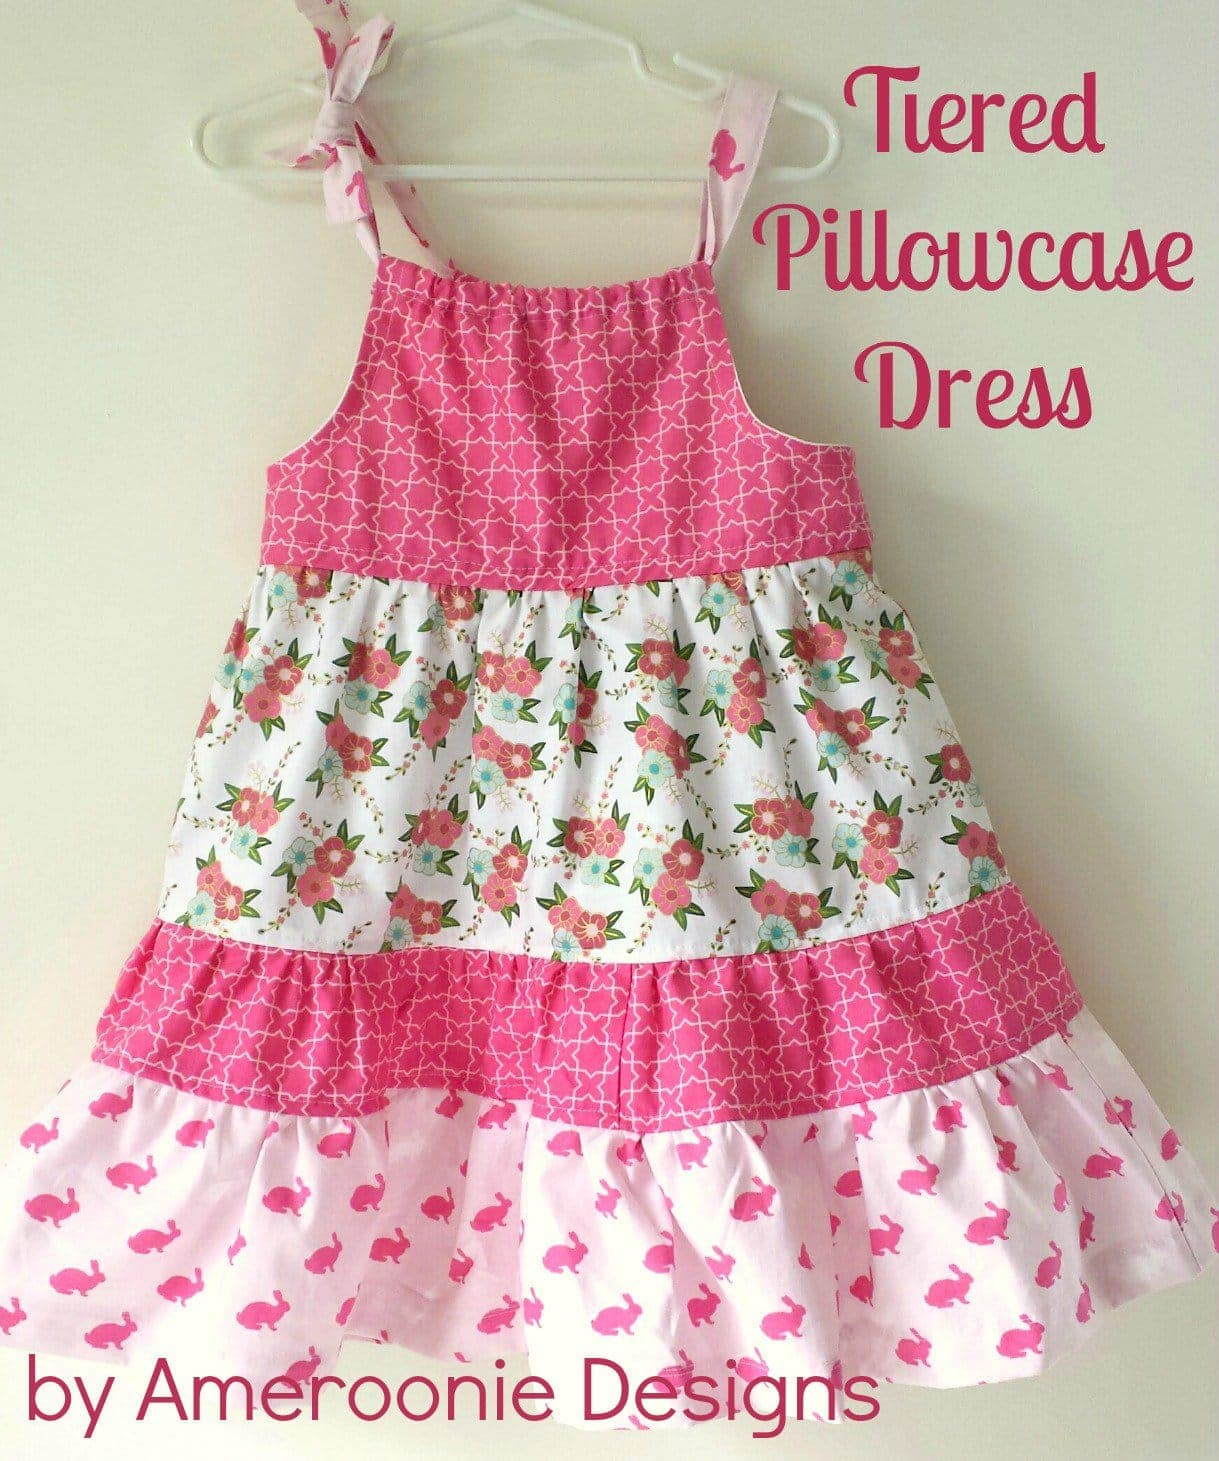 Tiered Pillowcase Dress Tutorial: Tiered Pillowcase Dress Tutorial   The Polka Dot Chair,